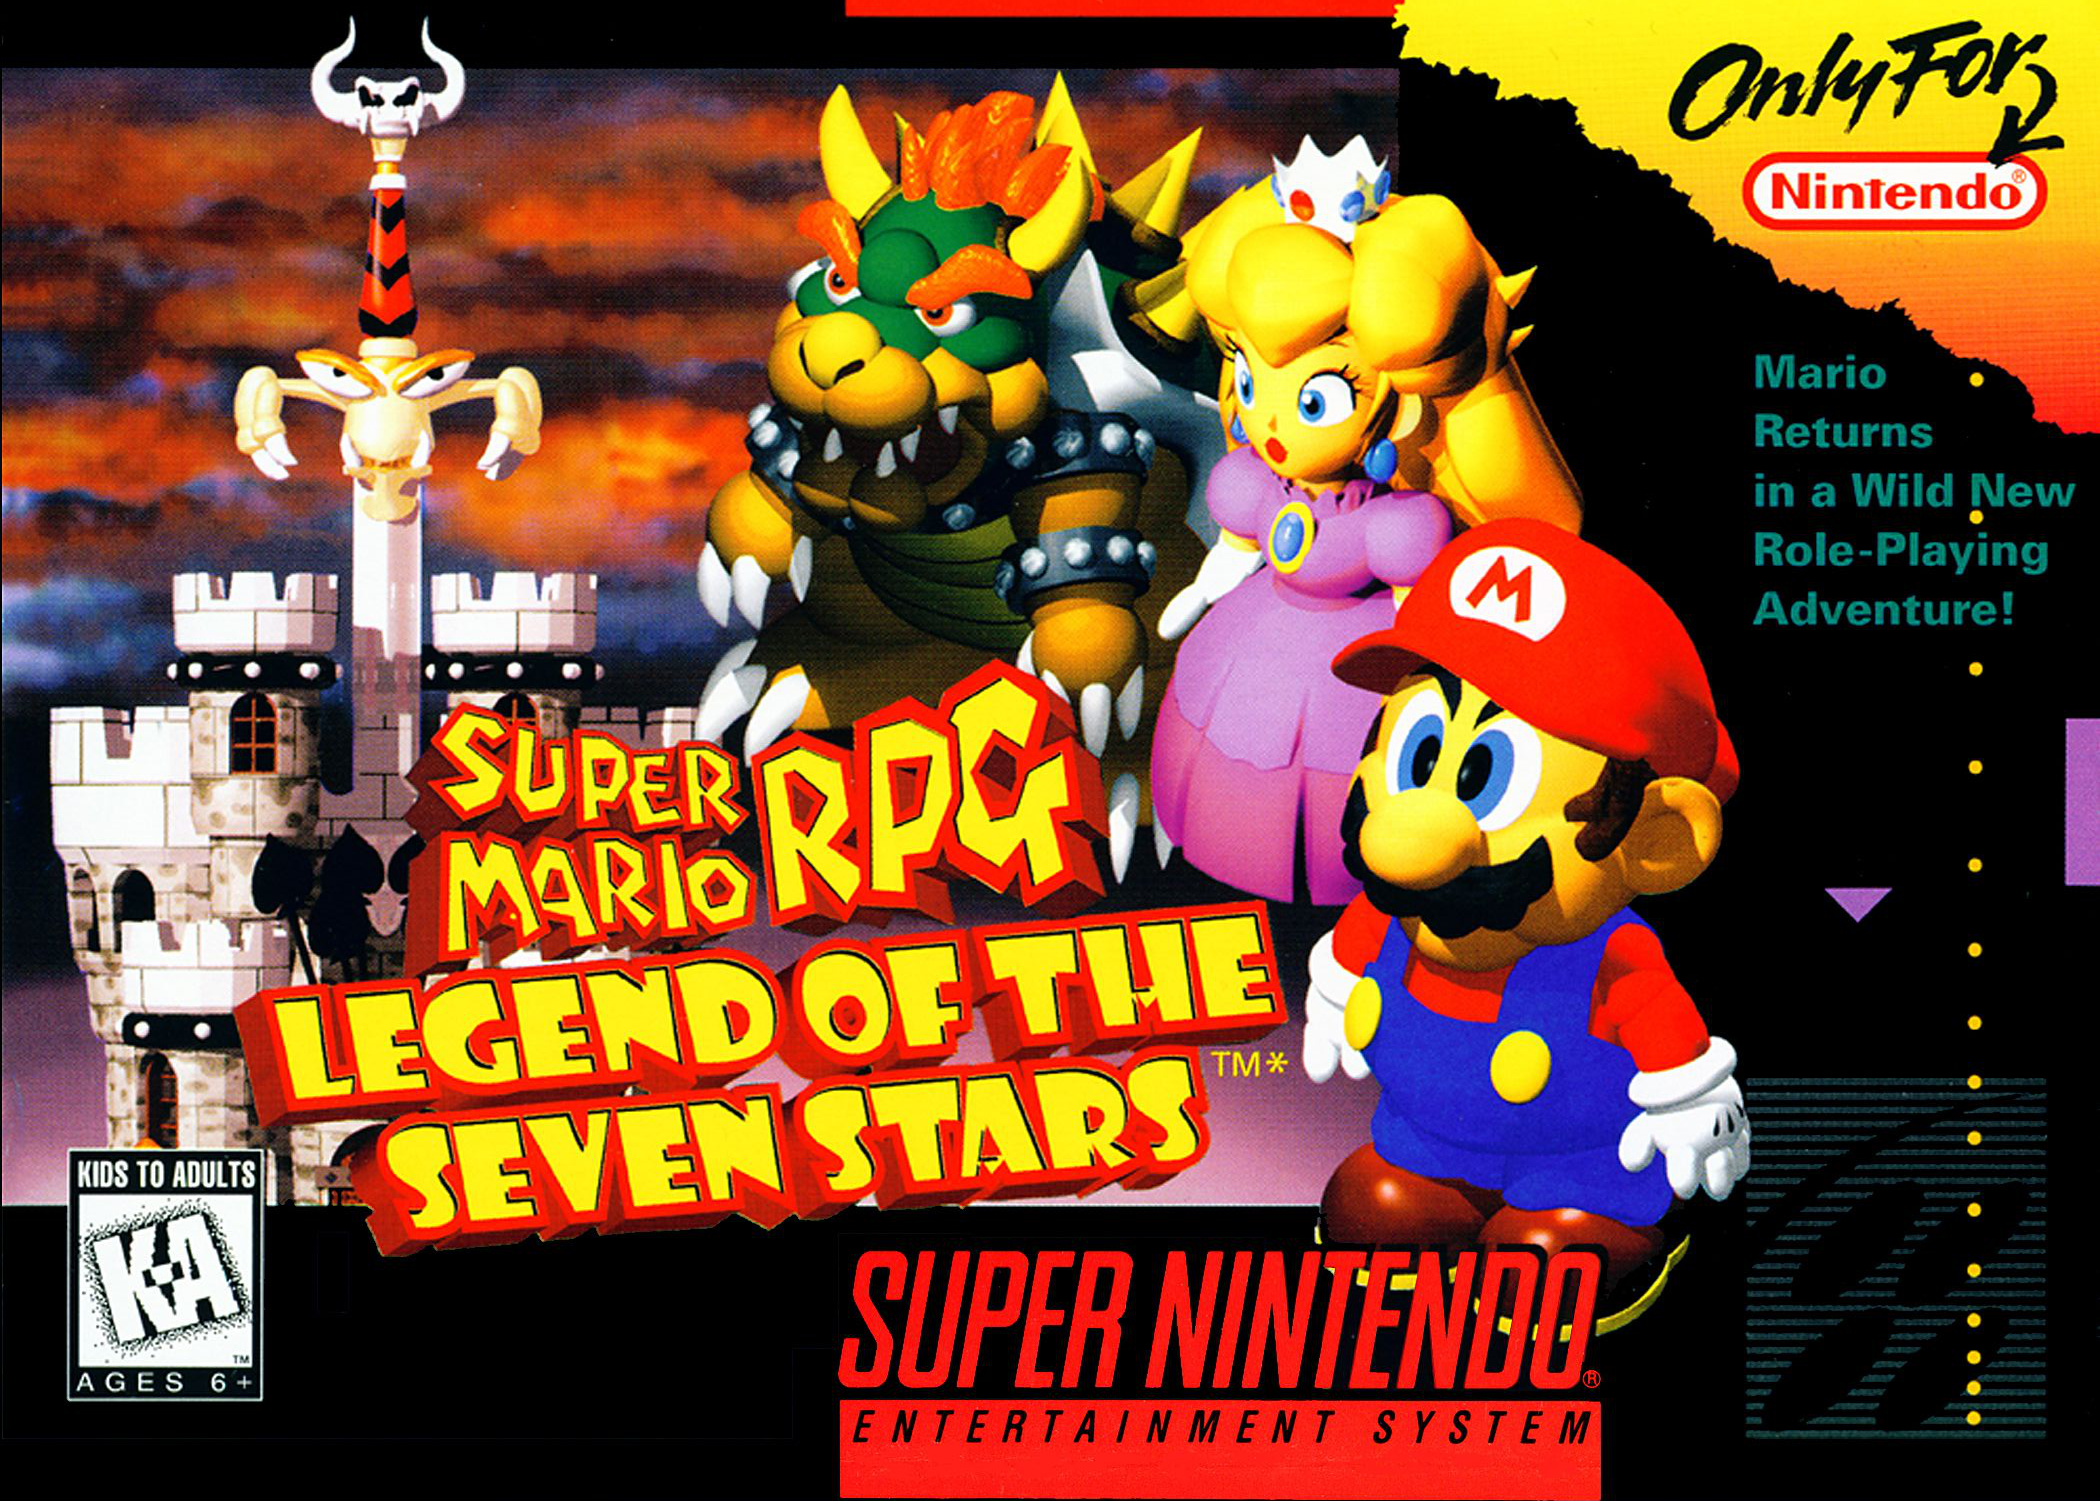 The MacWha's Top 5 Super Nintendo Games of All Time